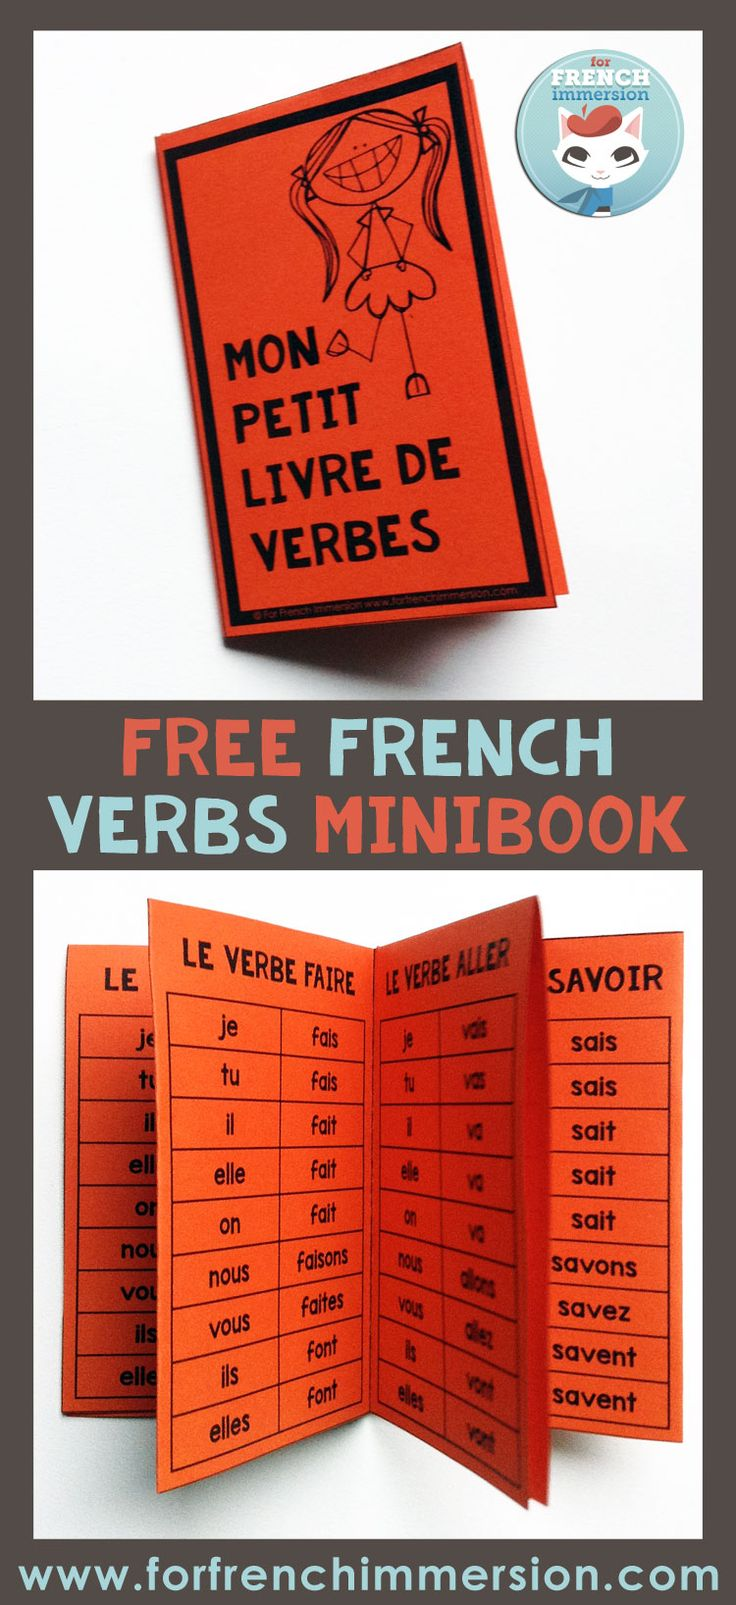 17 Best ideas about French Worksheets on Pinterest  Learning  grade worksheets, math worksheets, alphabet worksheets, free worksheets, and education French Regular Verbs Worksheet 1605 x 736